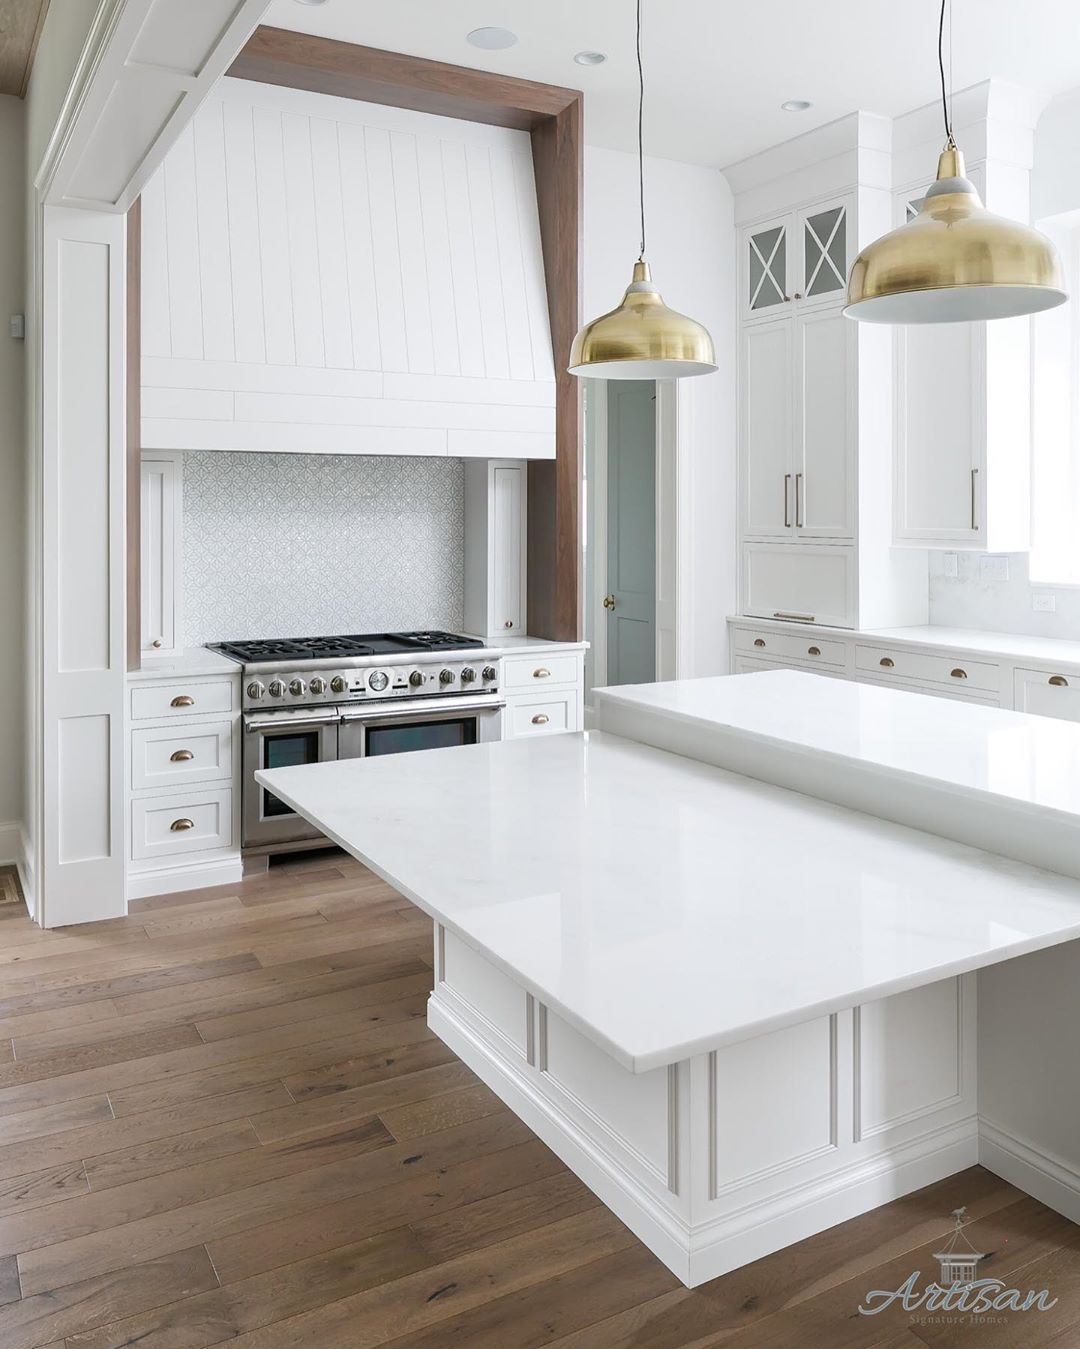 J A S O N B L A C K On Instagram What Do You Guys Think Of Incorporating The Breakfast Room Table Into The Kitchen I Beautiful Kitchens Kitchen Remodel Home